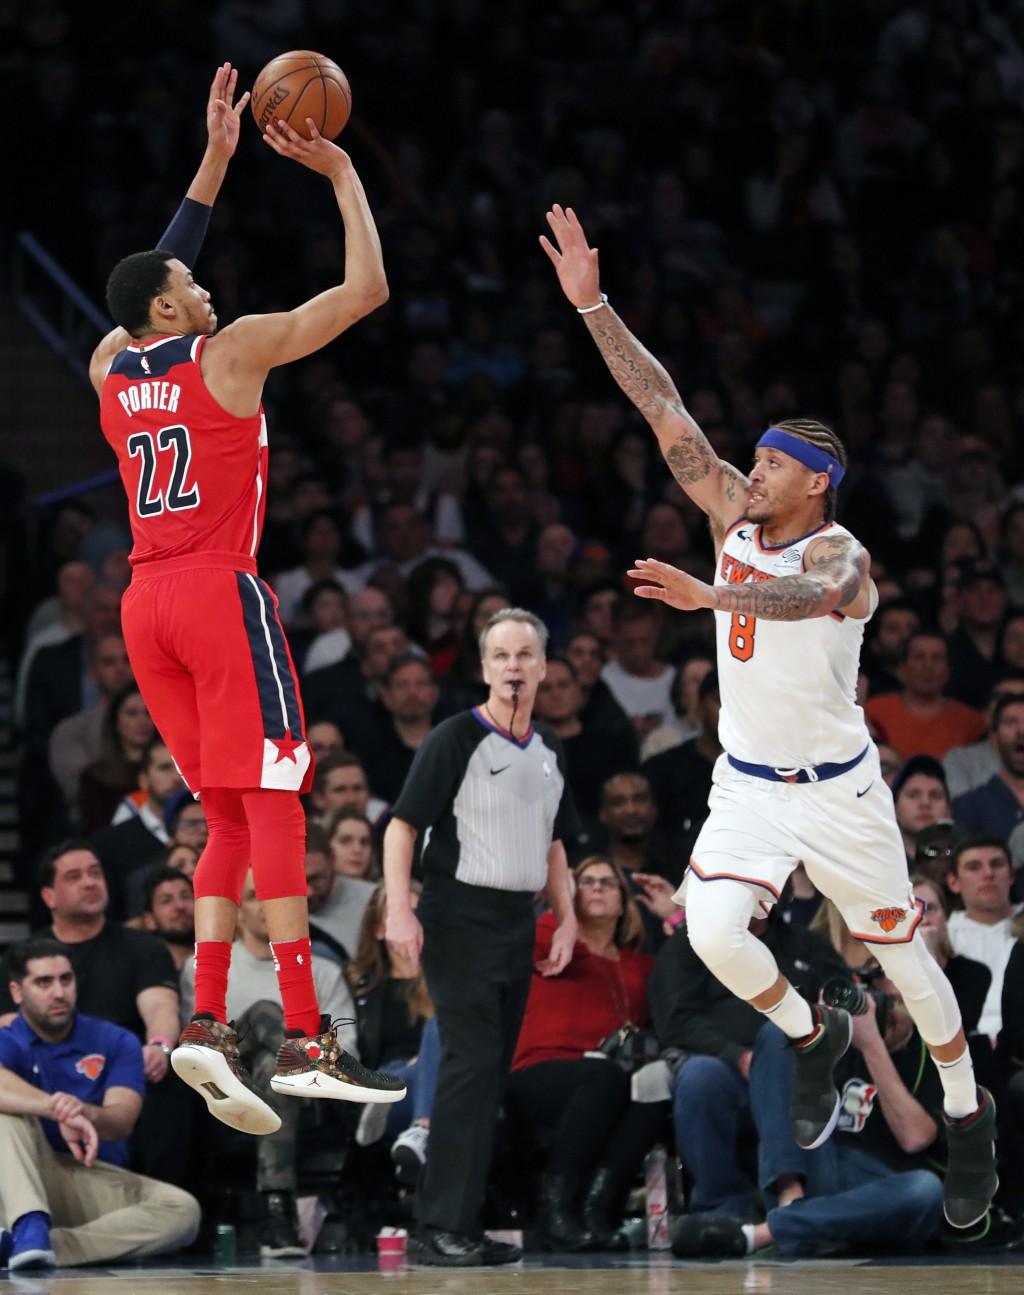 Washington Wizards forward Otto Porter Jr. (22) shoots a three-pointer as New York Knicks forward Michael Beasley (8) defend in the second half of an